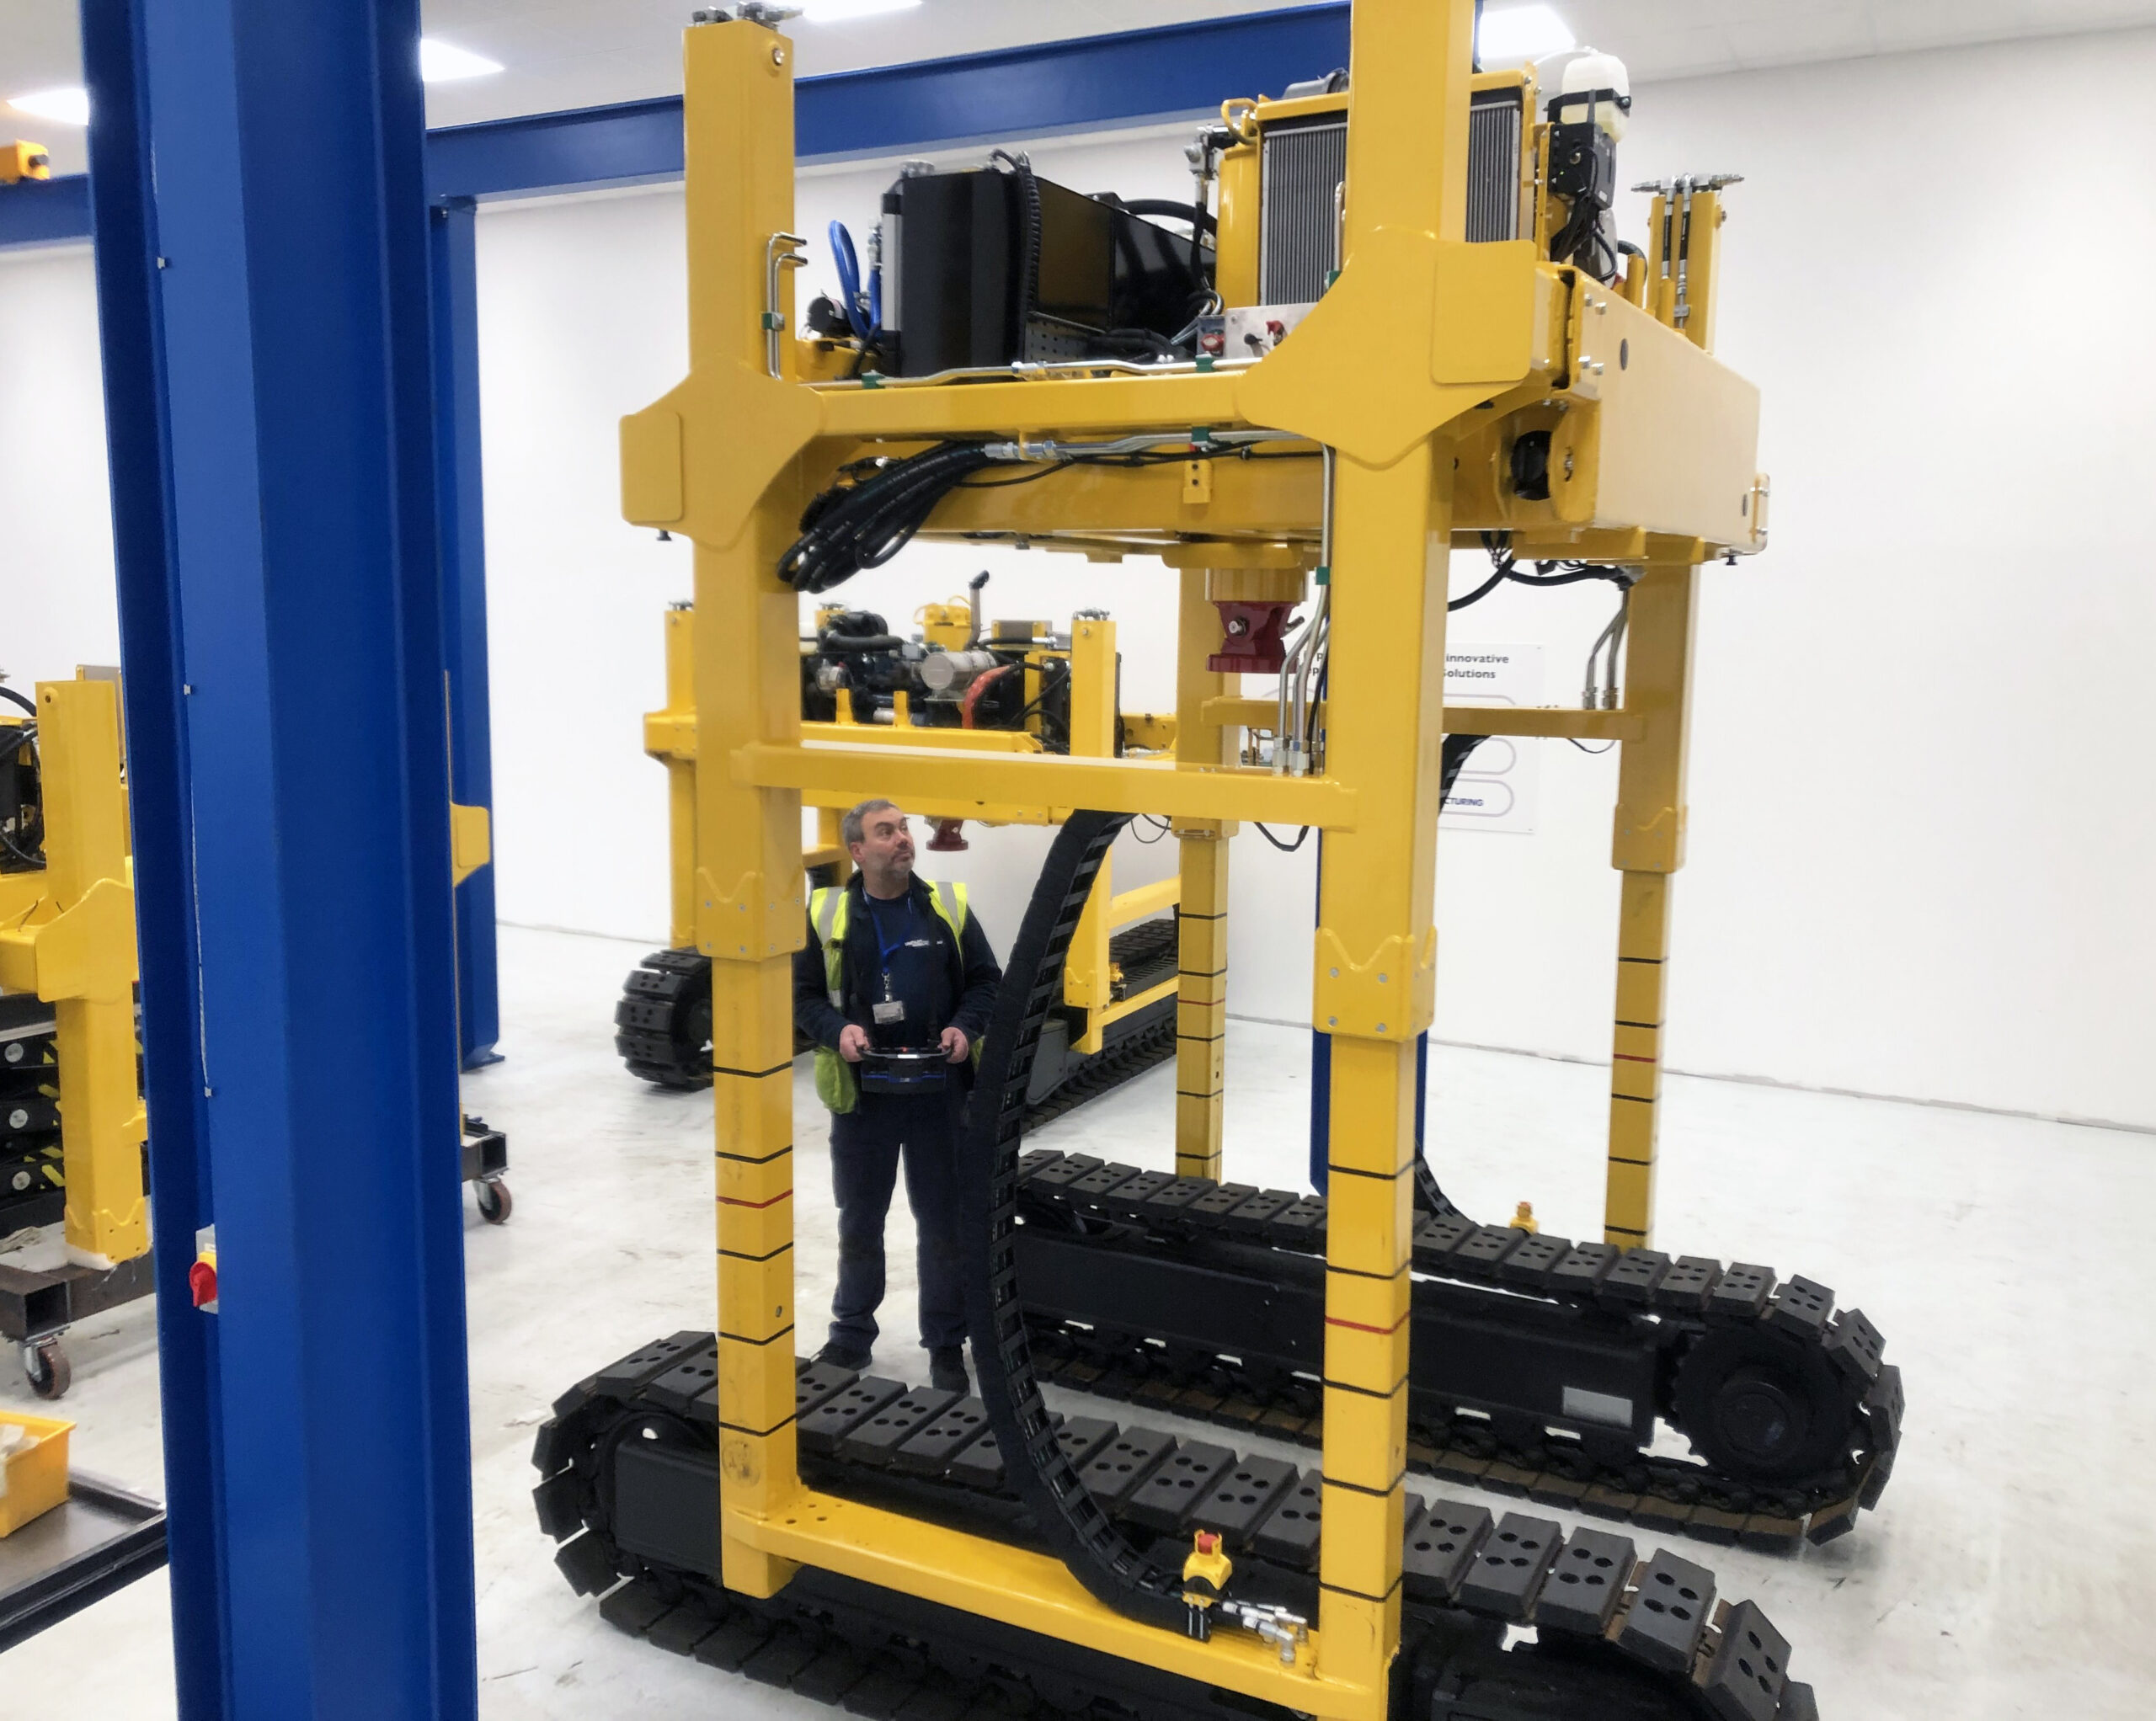 Unipart-McCulloch-Panel Lifter Manufacture